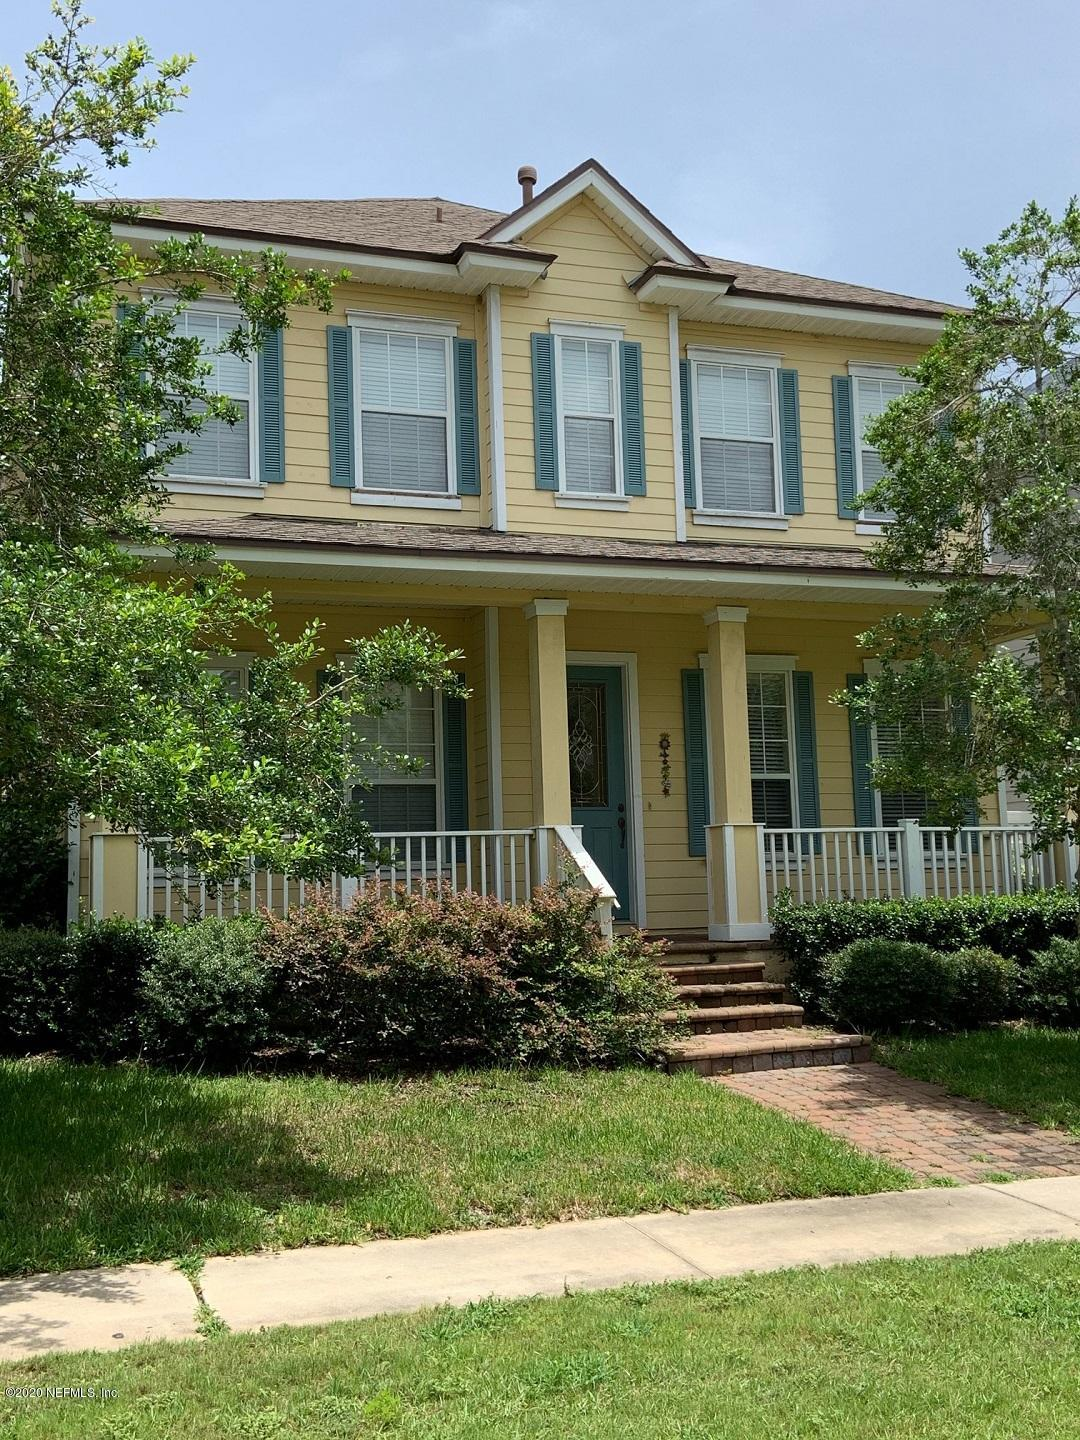 416 CENTRAL, ST AUGUSTINE, FLORIDA 32095, 4 Bedrooms Bedrooms, ,3 BathroomsBathrooms,Residential,For sale,CENTRAL,1060416